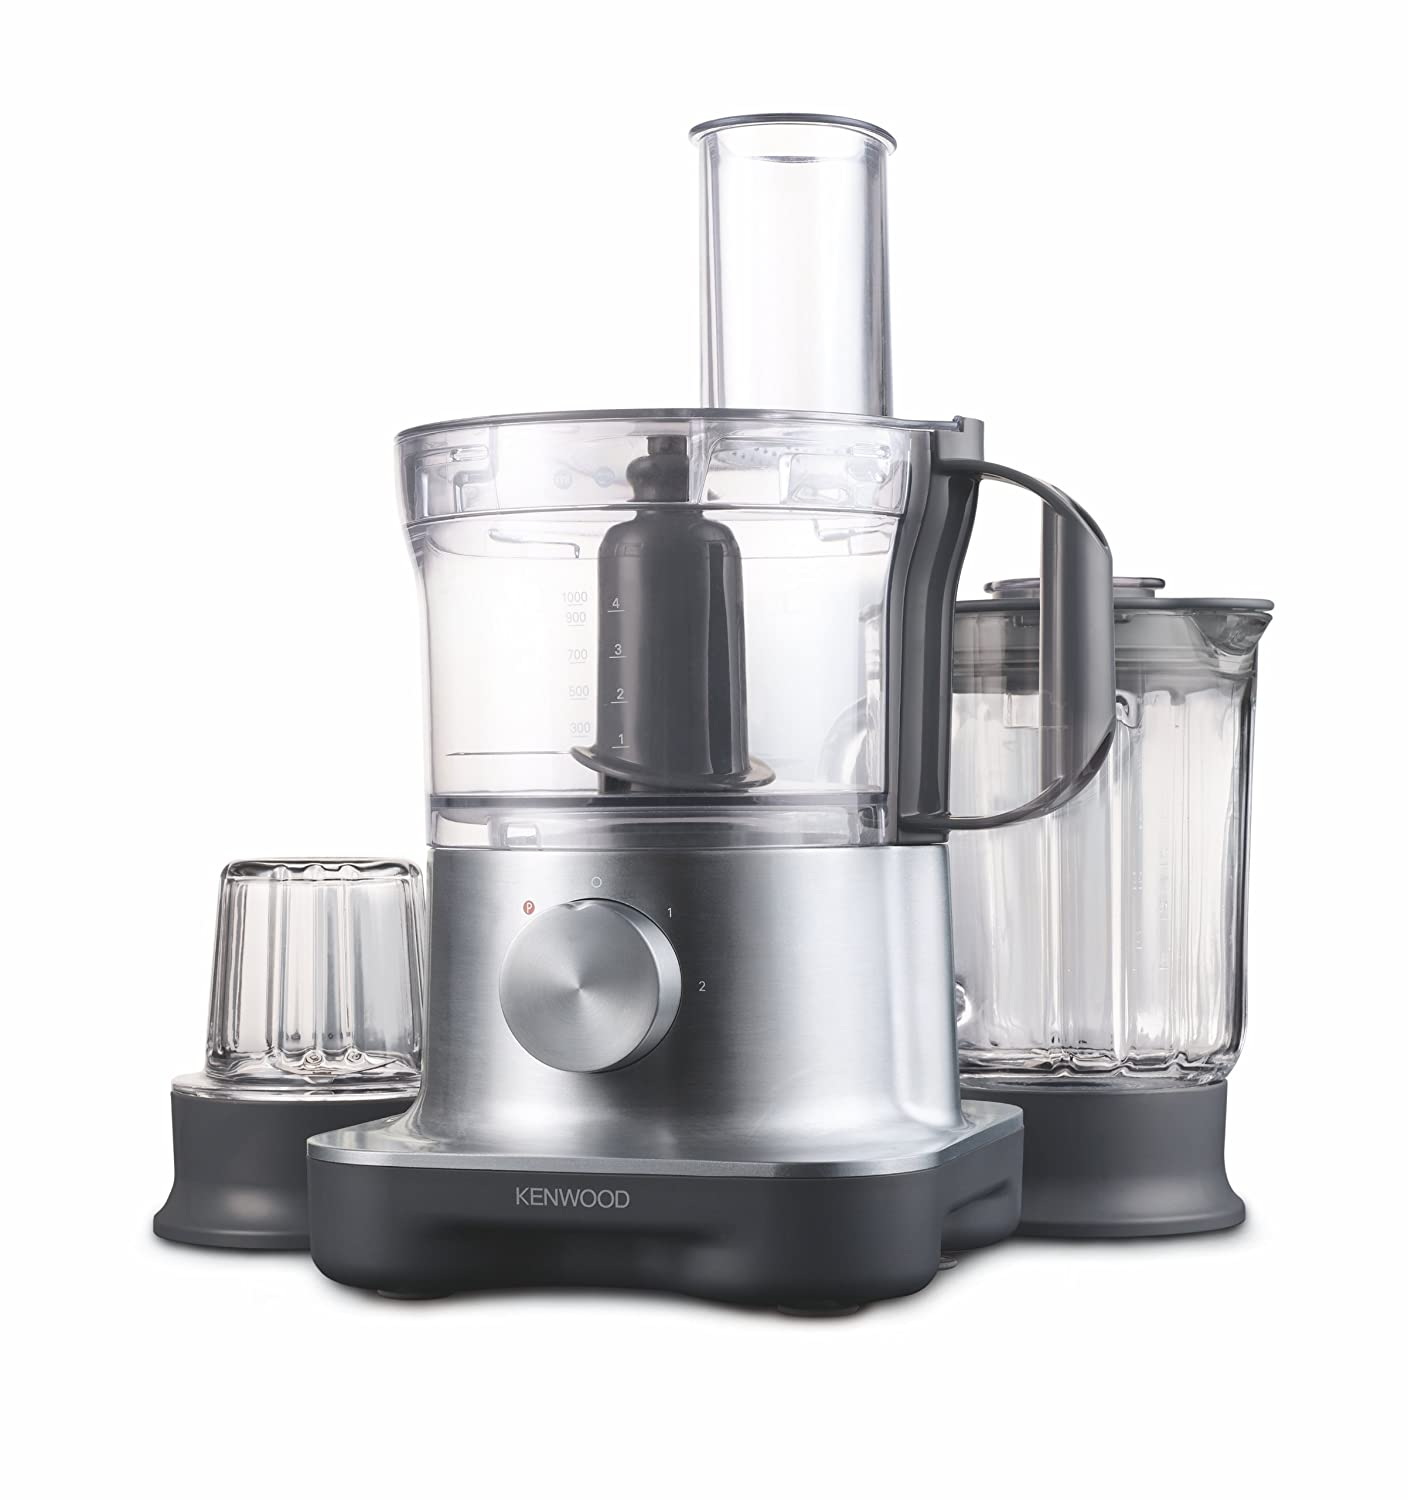 Kenwood Multi Pro FPM260 Food processor: Amazon.it: Casa e cucina